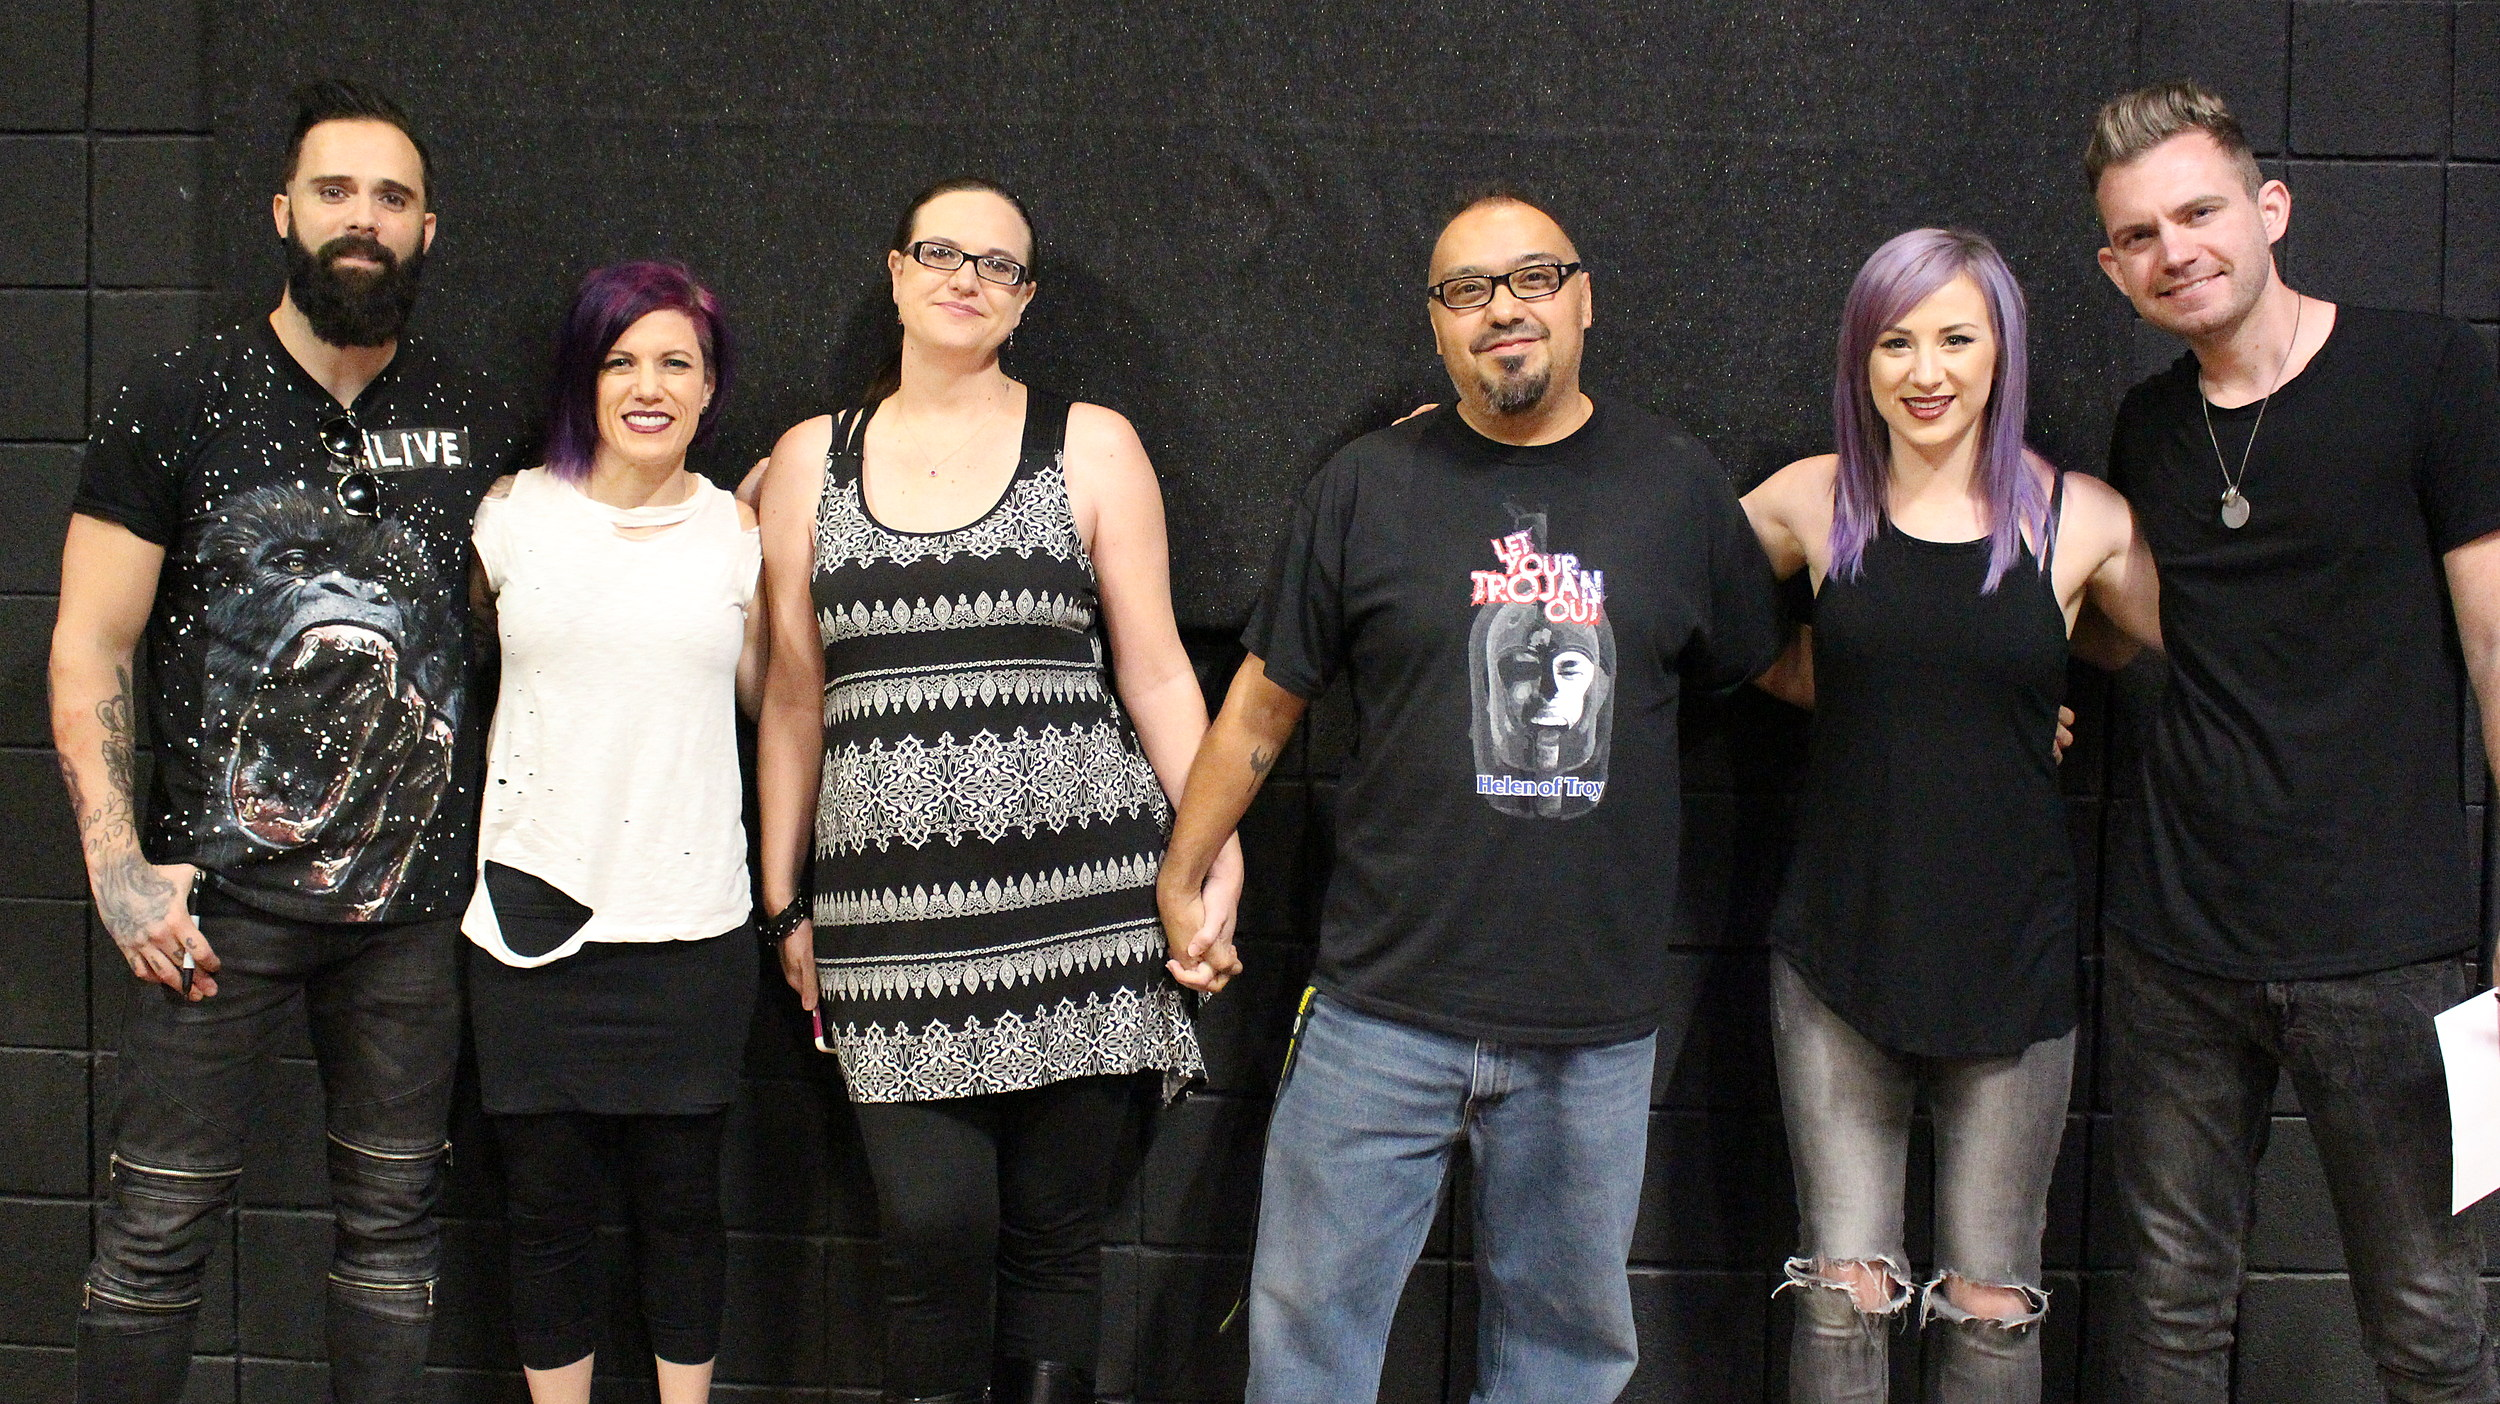 Skillet Acoustic Show Meet And Greet Photos